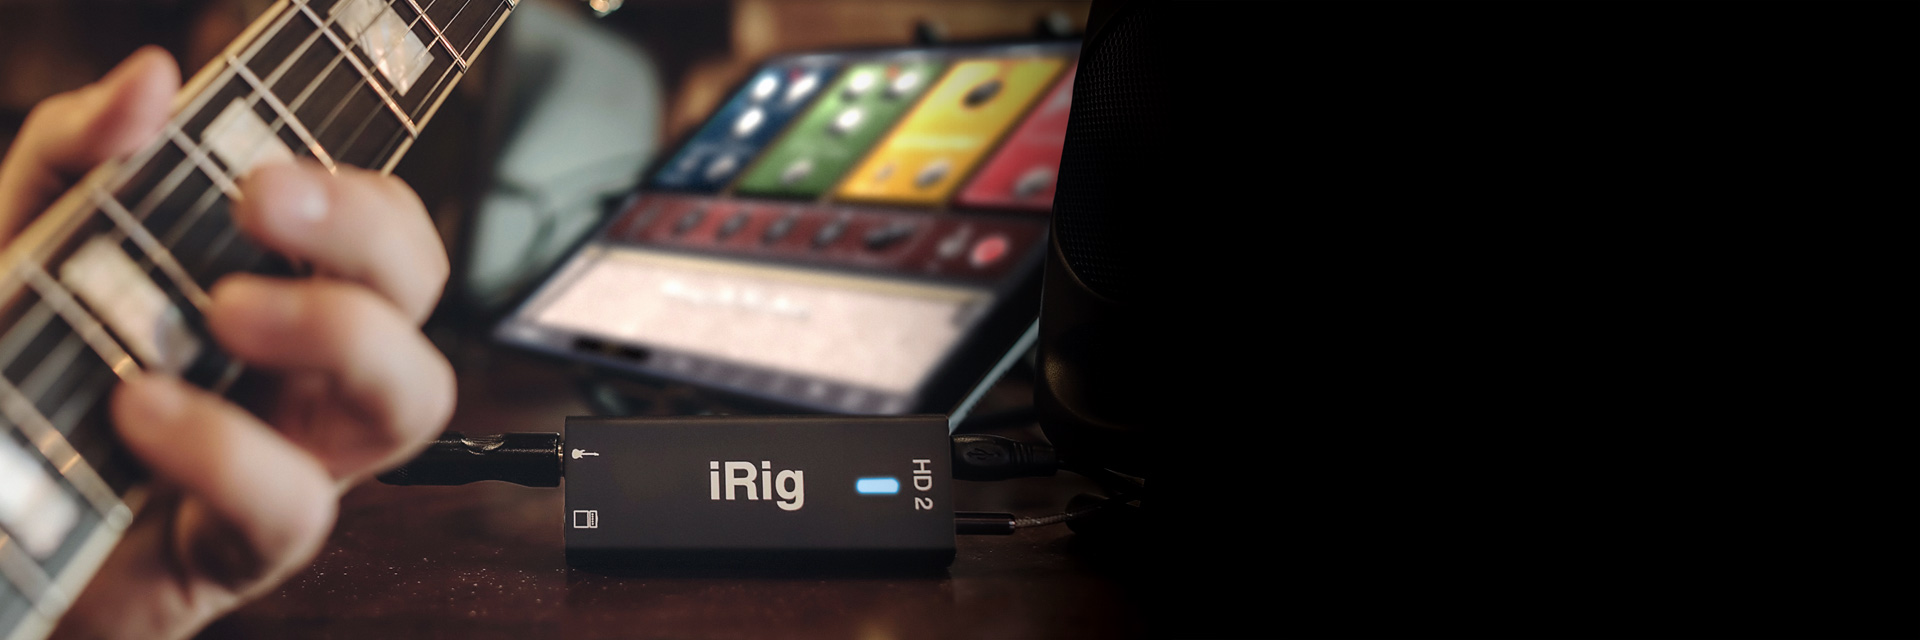 Ik Multimedia Irig Hd 2 Jazz B Pickup Wiring Diagram Play And Record At A Higher Level